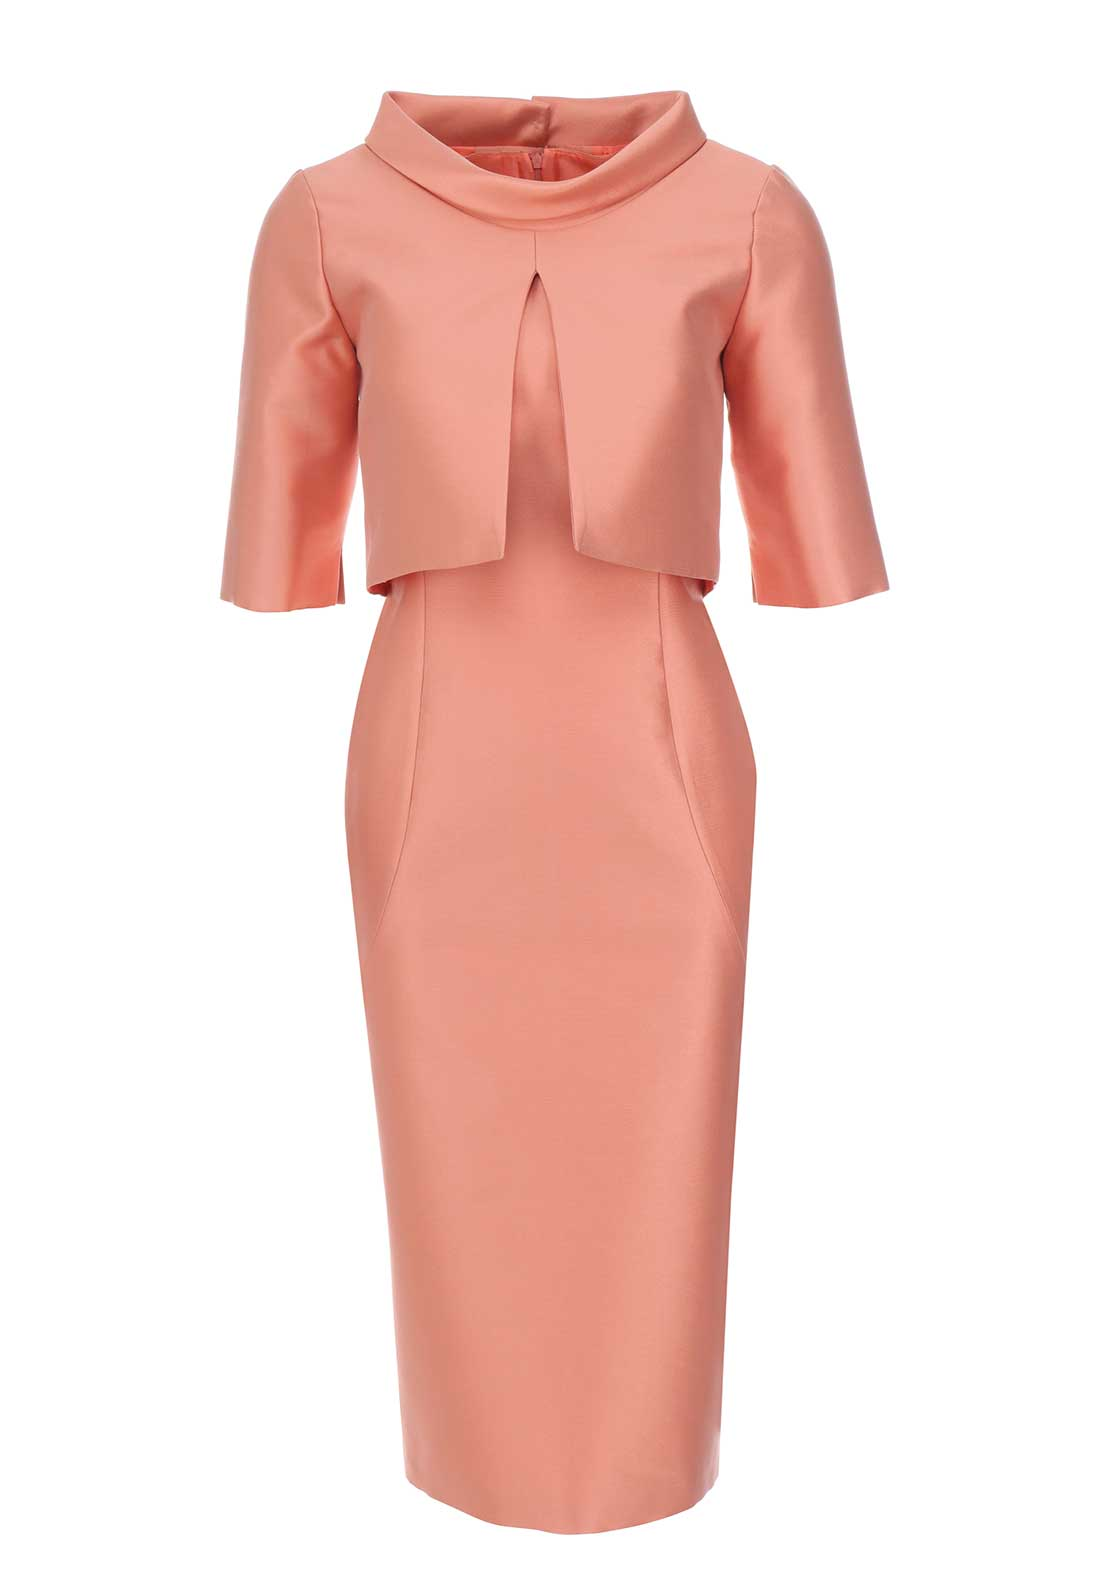 Fely Campo Silk Pencil Dress & Bolero Jacket, Deep Peach